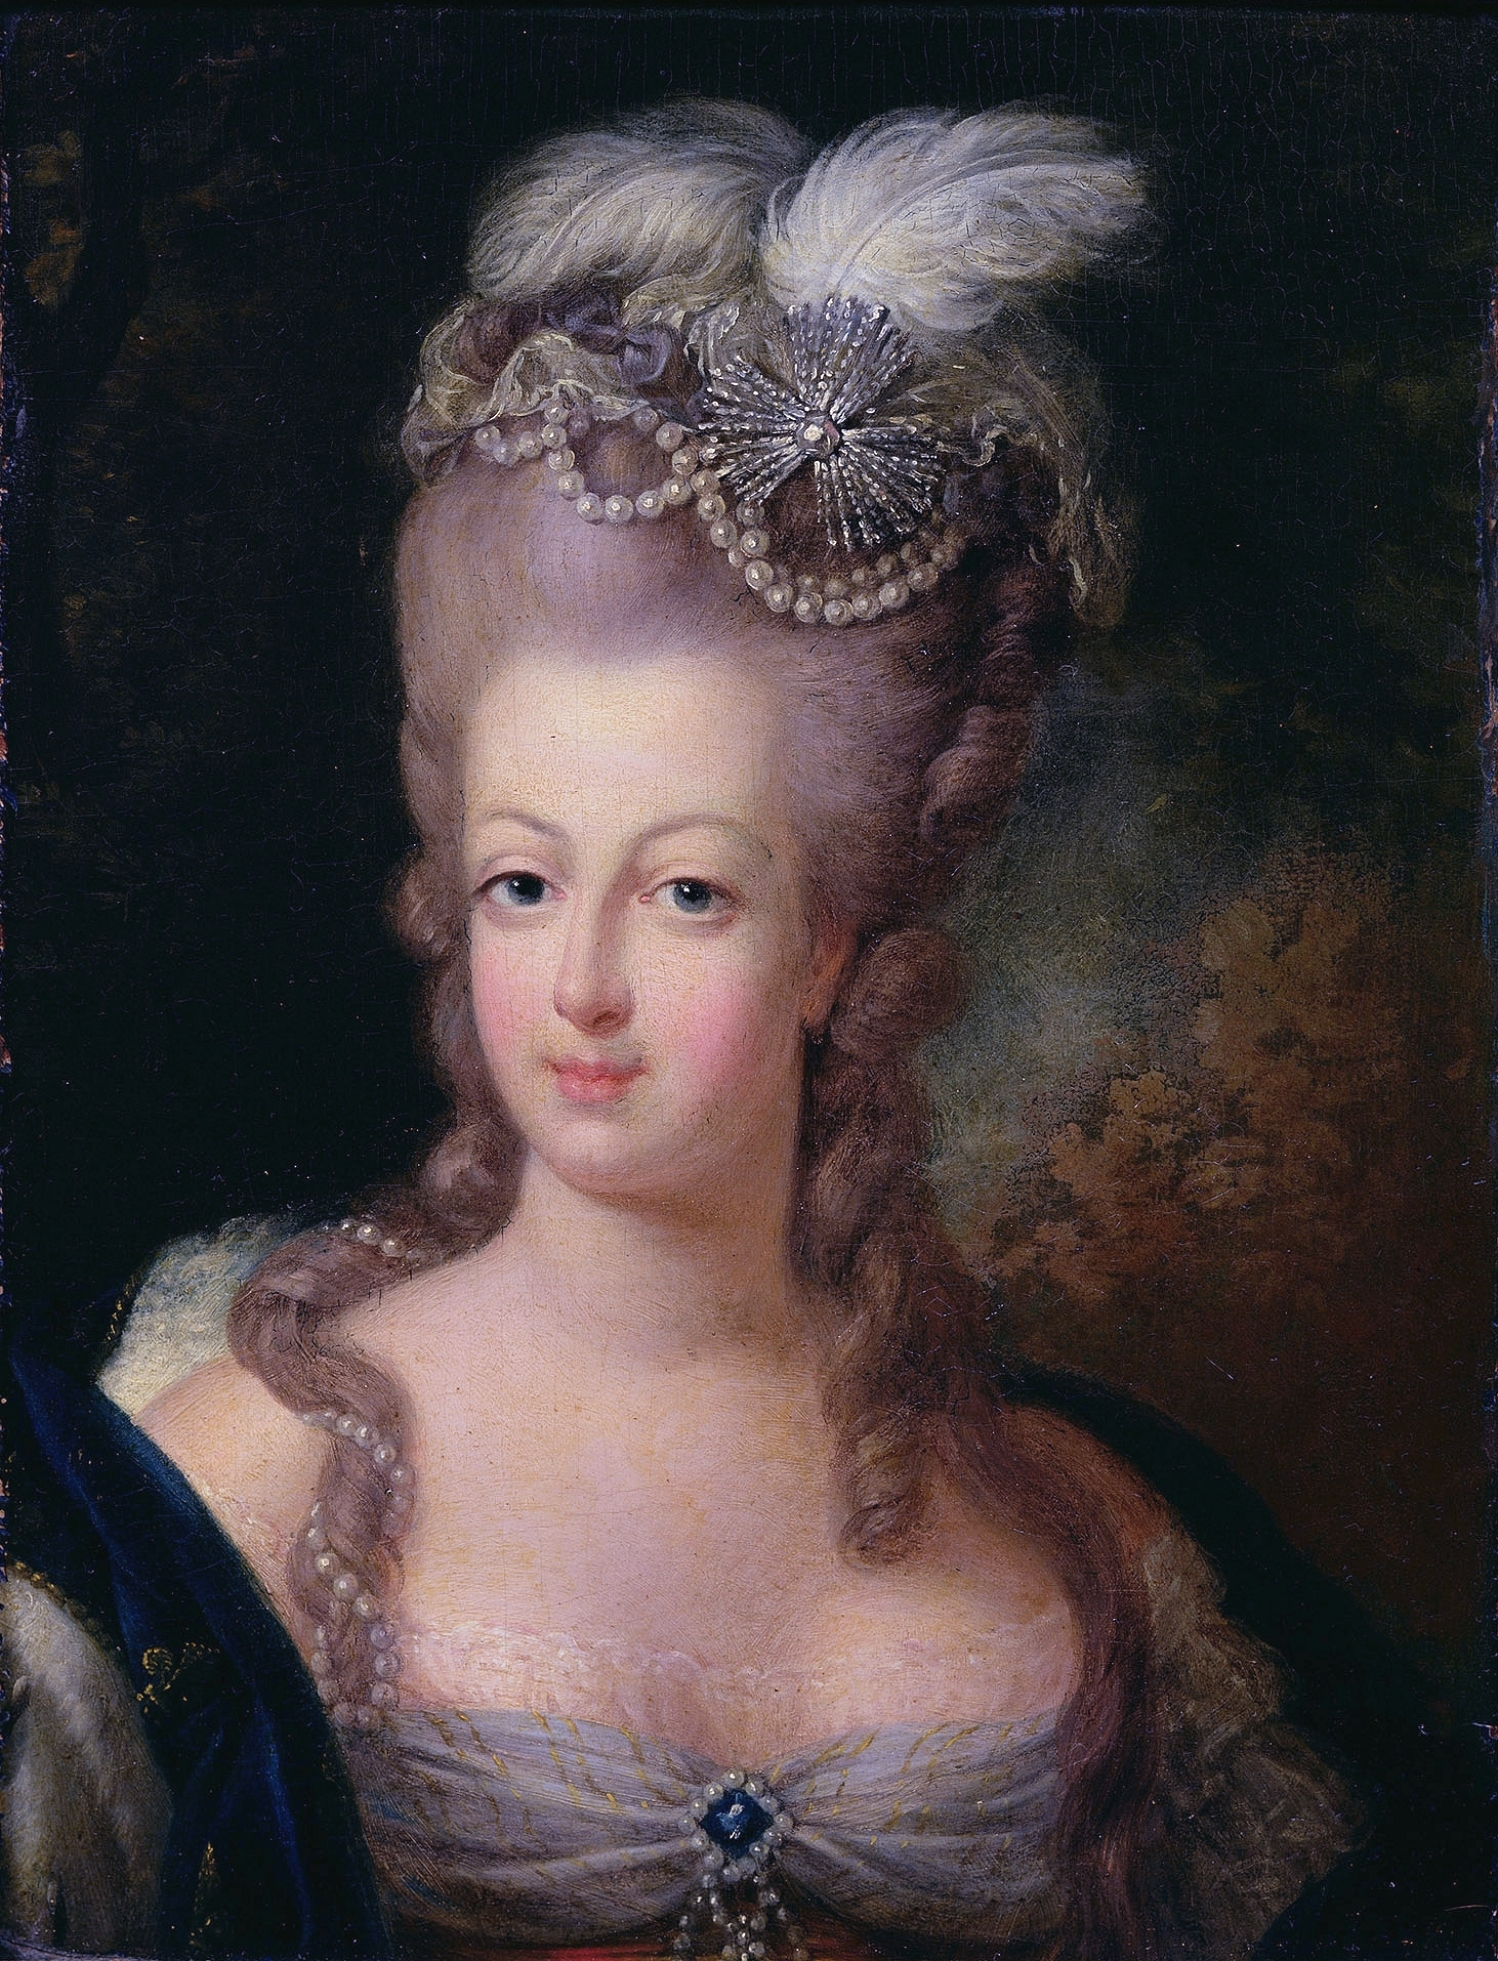 http://upload.wikimedia.org/wikipedia/commons/9/98/Marie-Antoinette,_1775_-_Mus%C3%A9e_Antoine_L%C3%A9cuyer.jpg